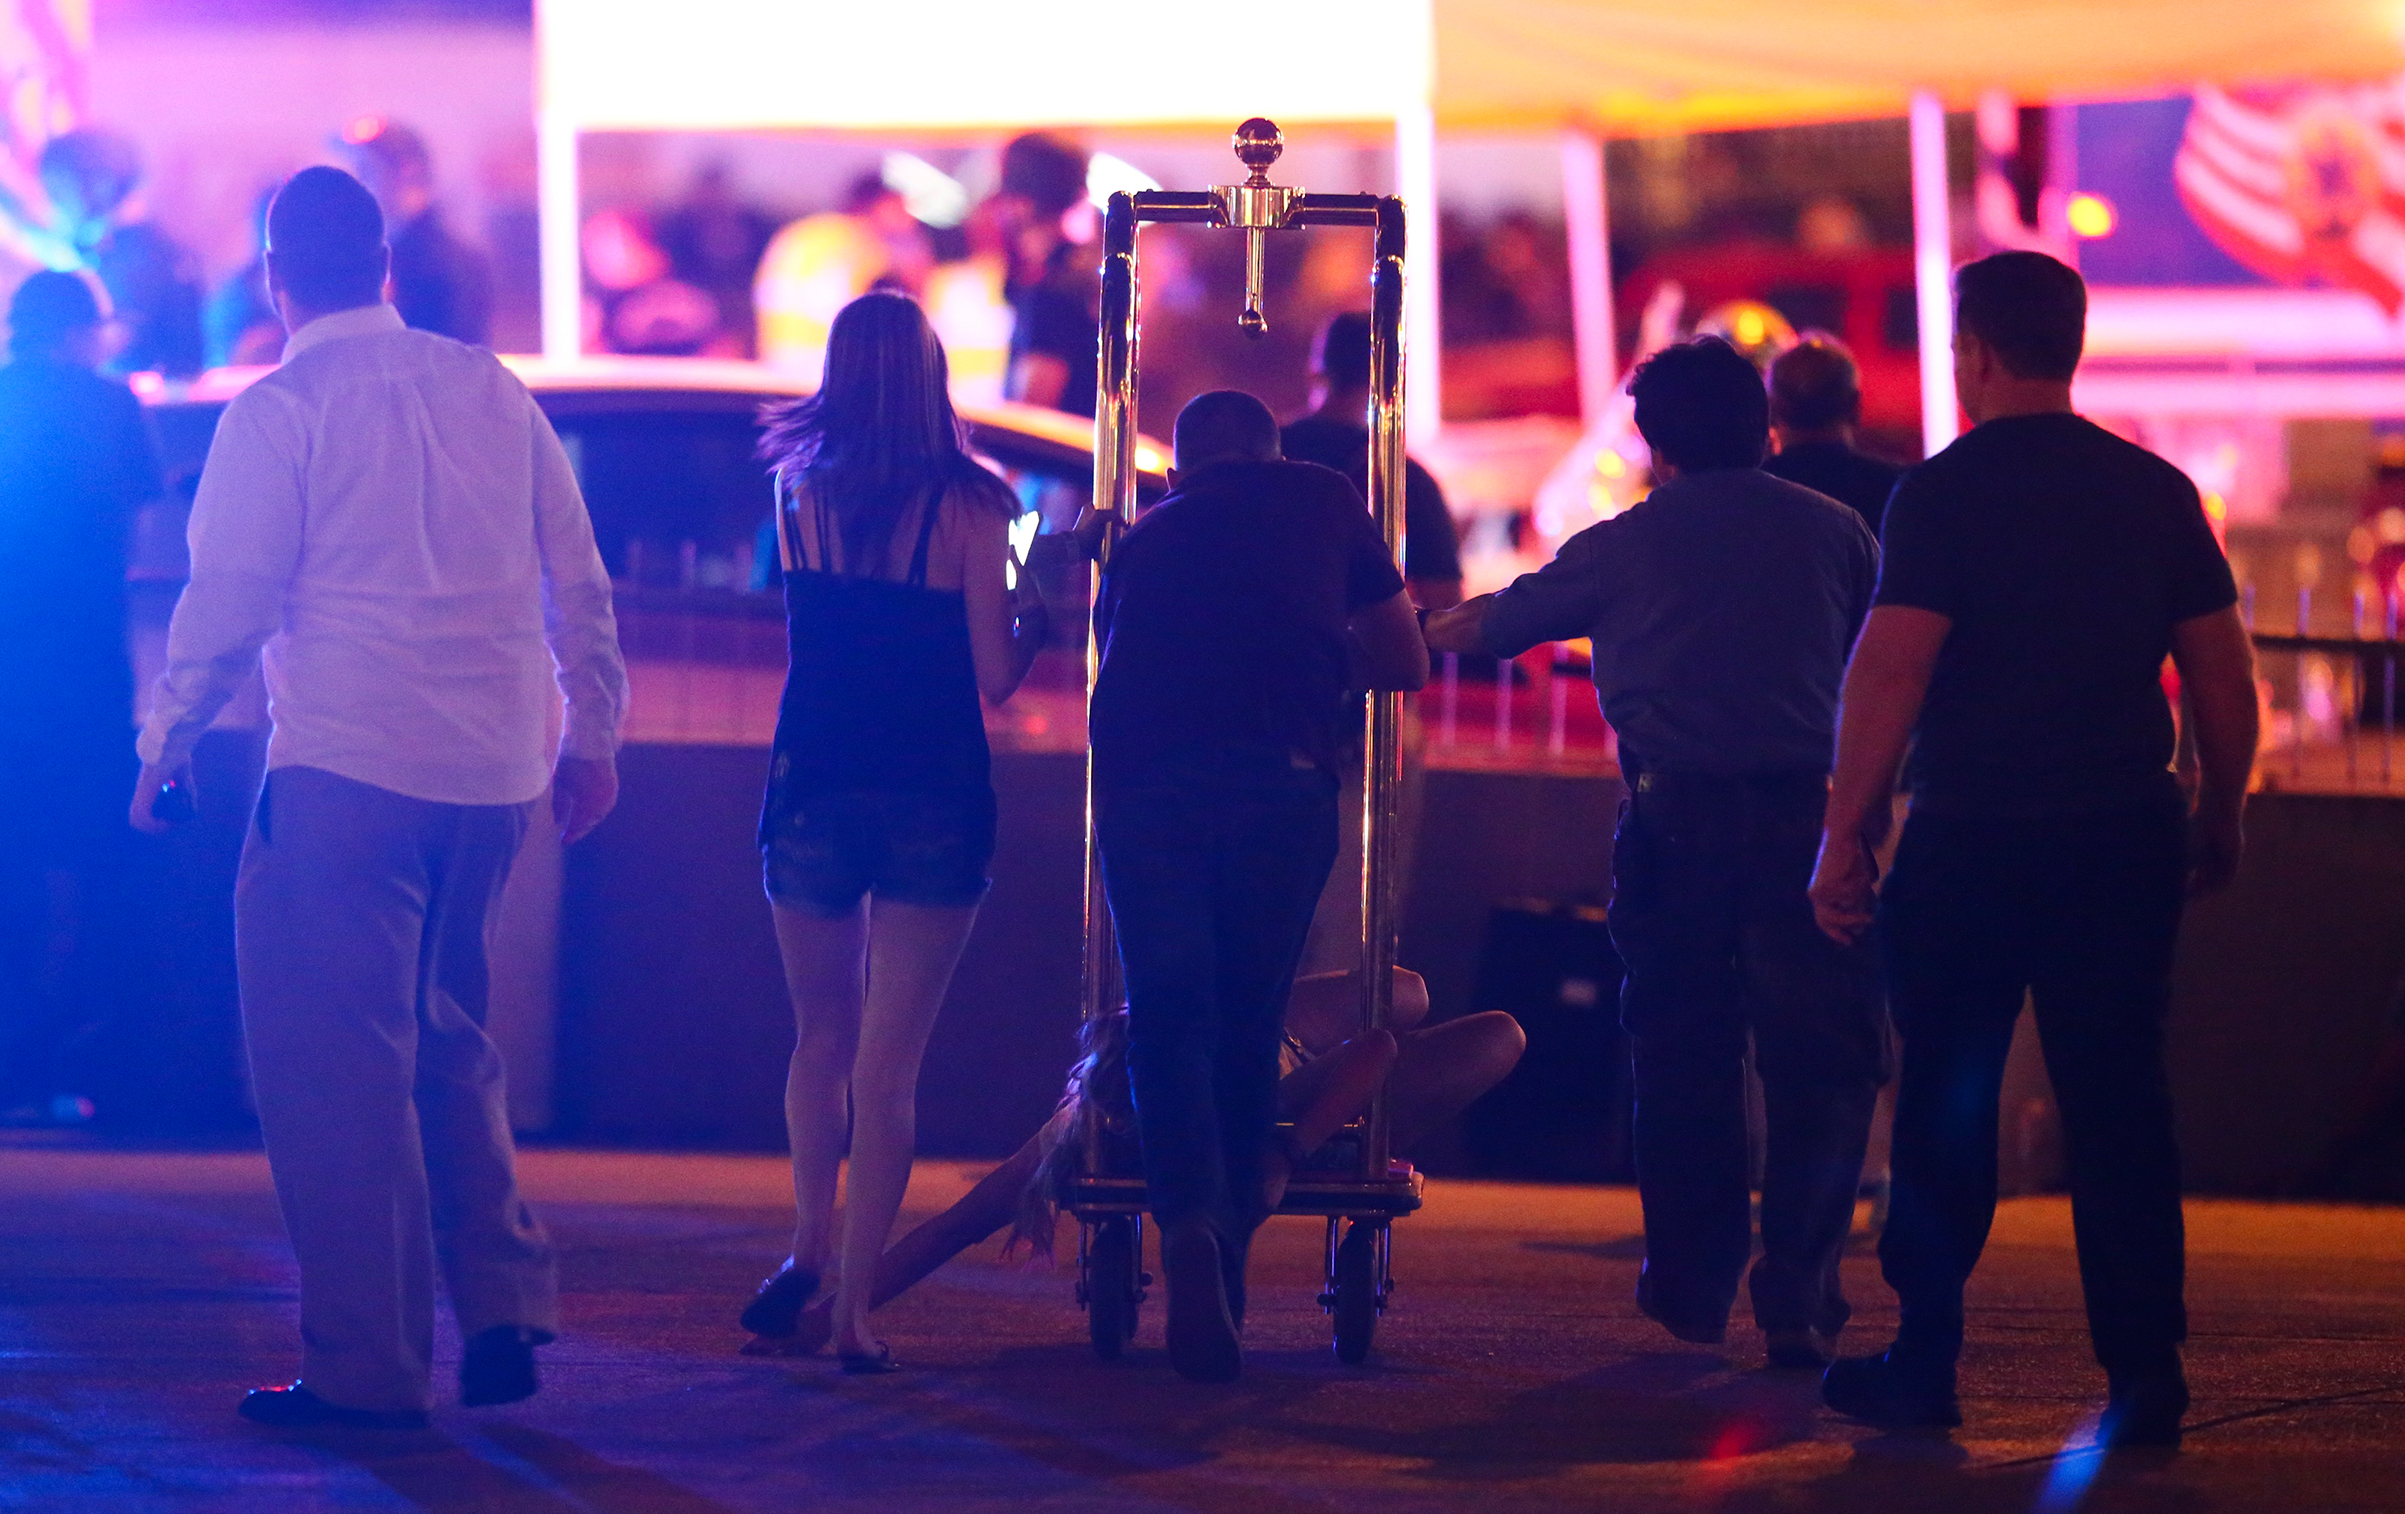 A wounded woman is transported outside the Tropicana during an active shooter situation on the Las Vegas Strip on Oct. 1, 2017.